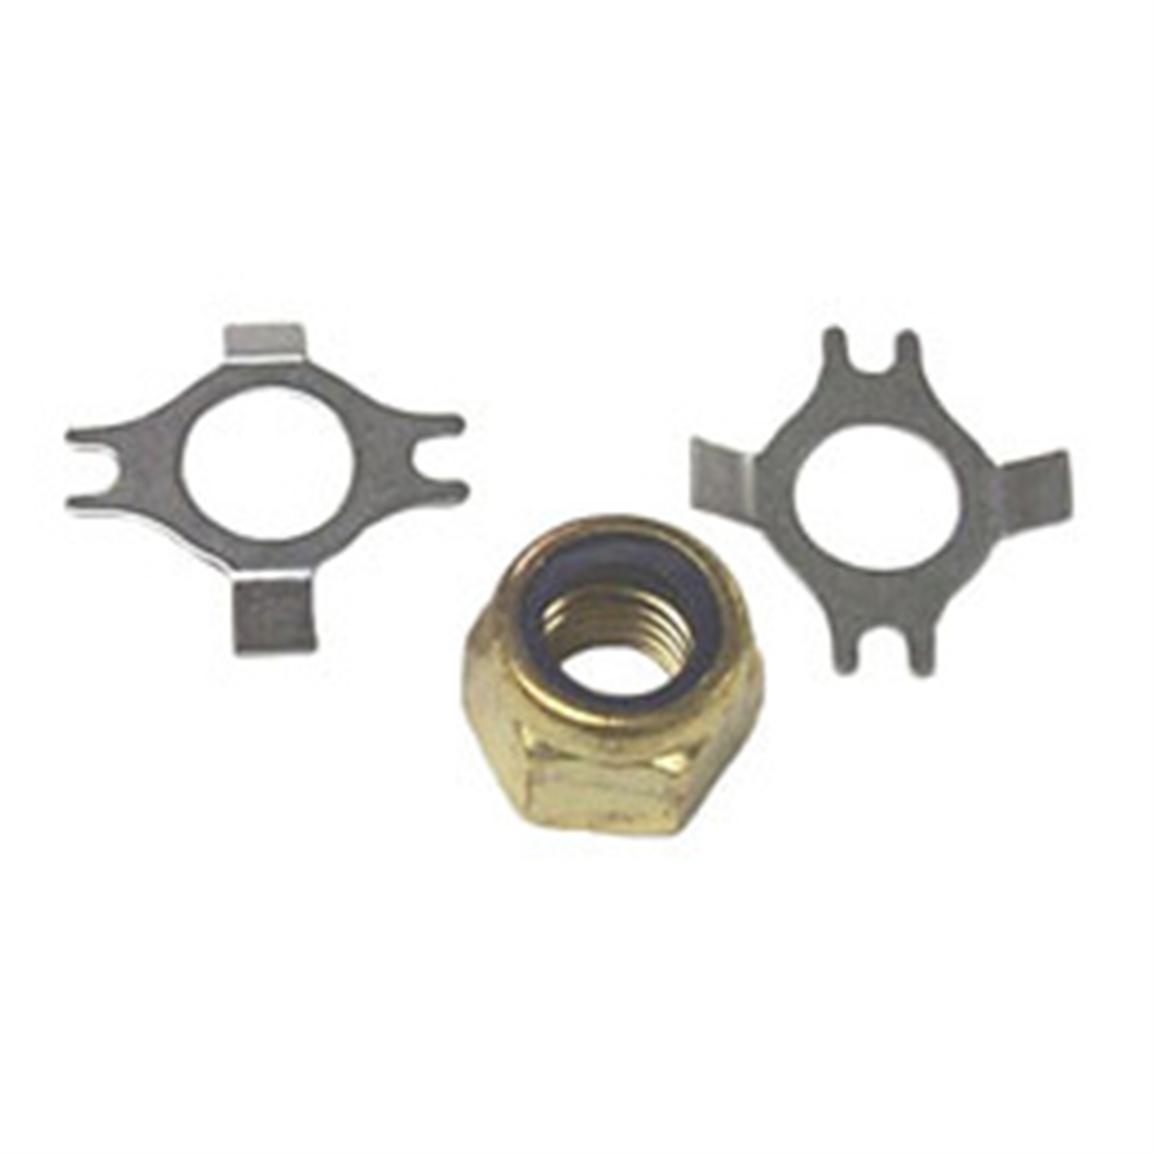 Sierra Marine® Prop Nut and Tab Washer Kit